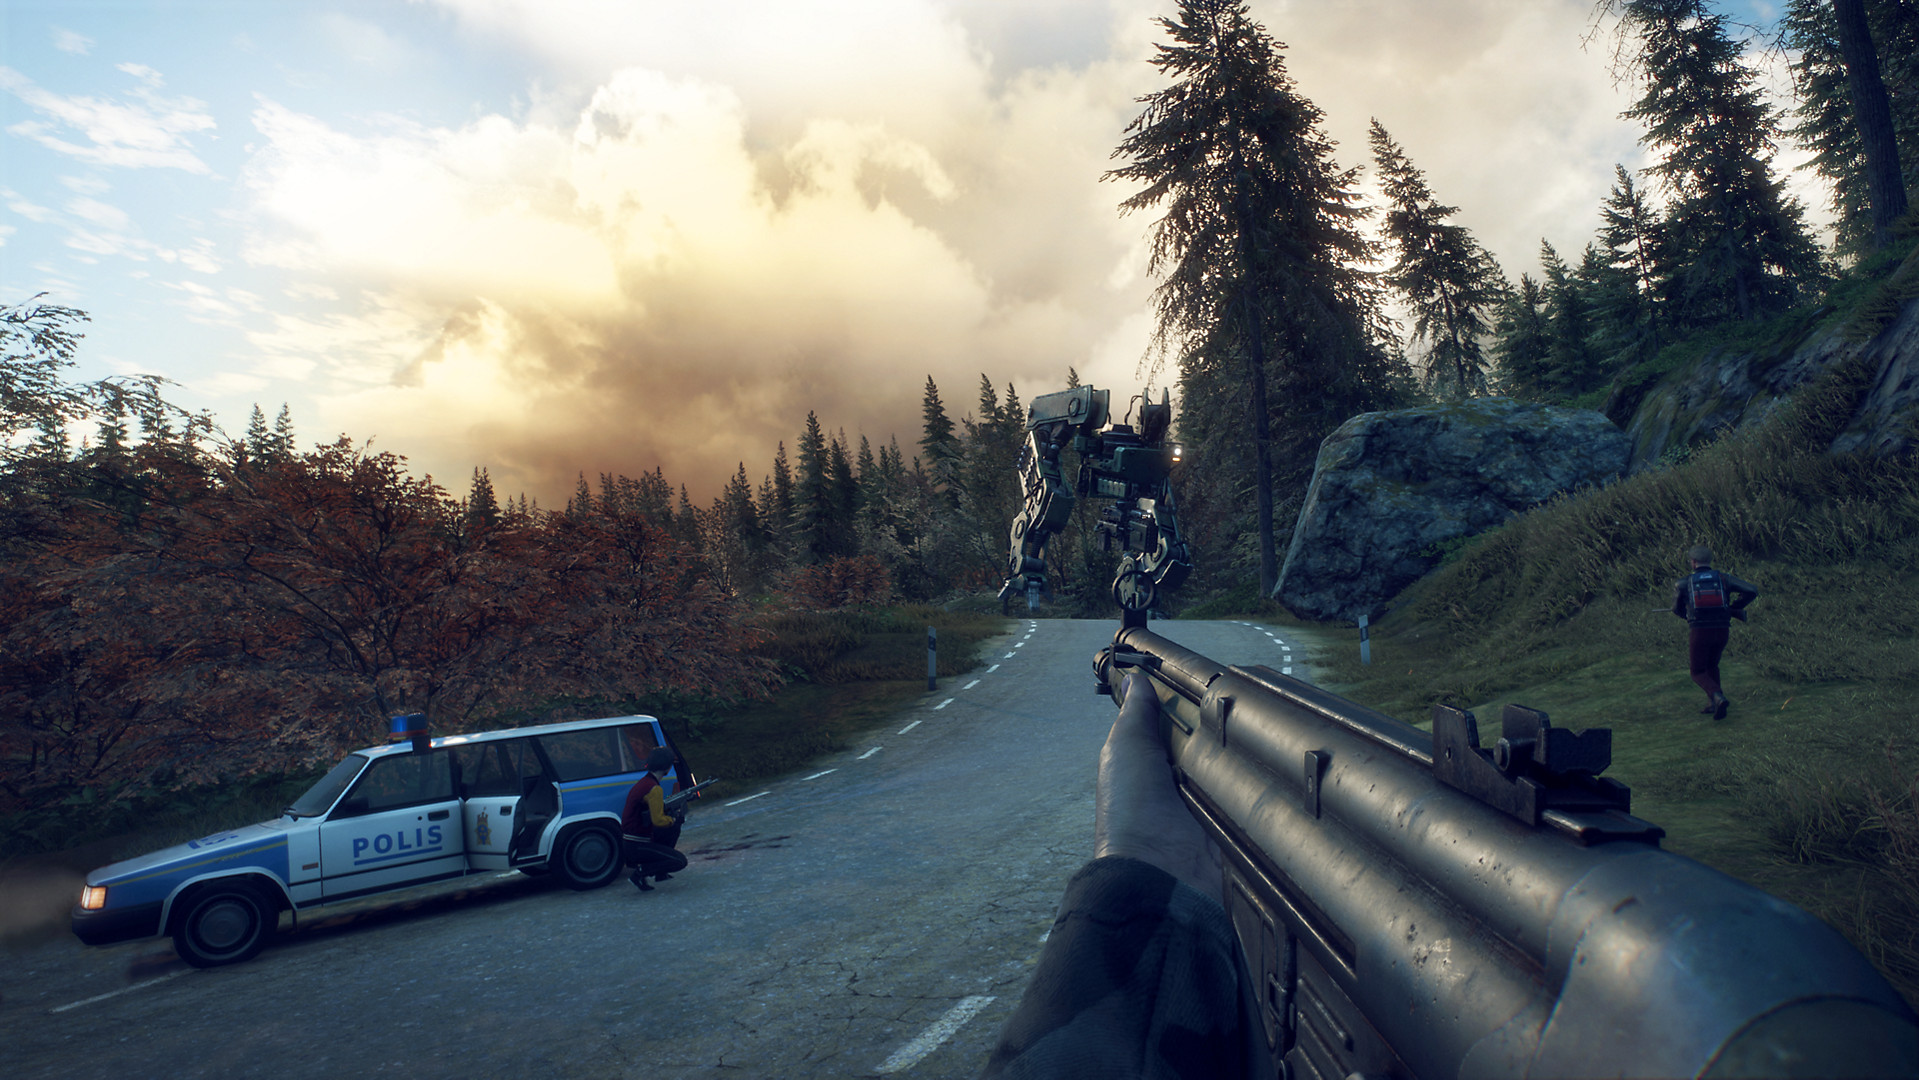 New Generation Zero trailer shows off the game's robot infested open-world & 1980s setting